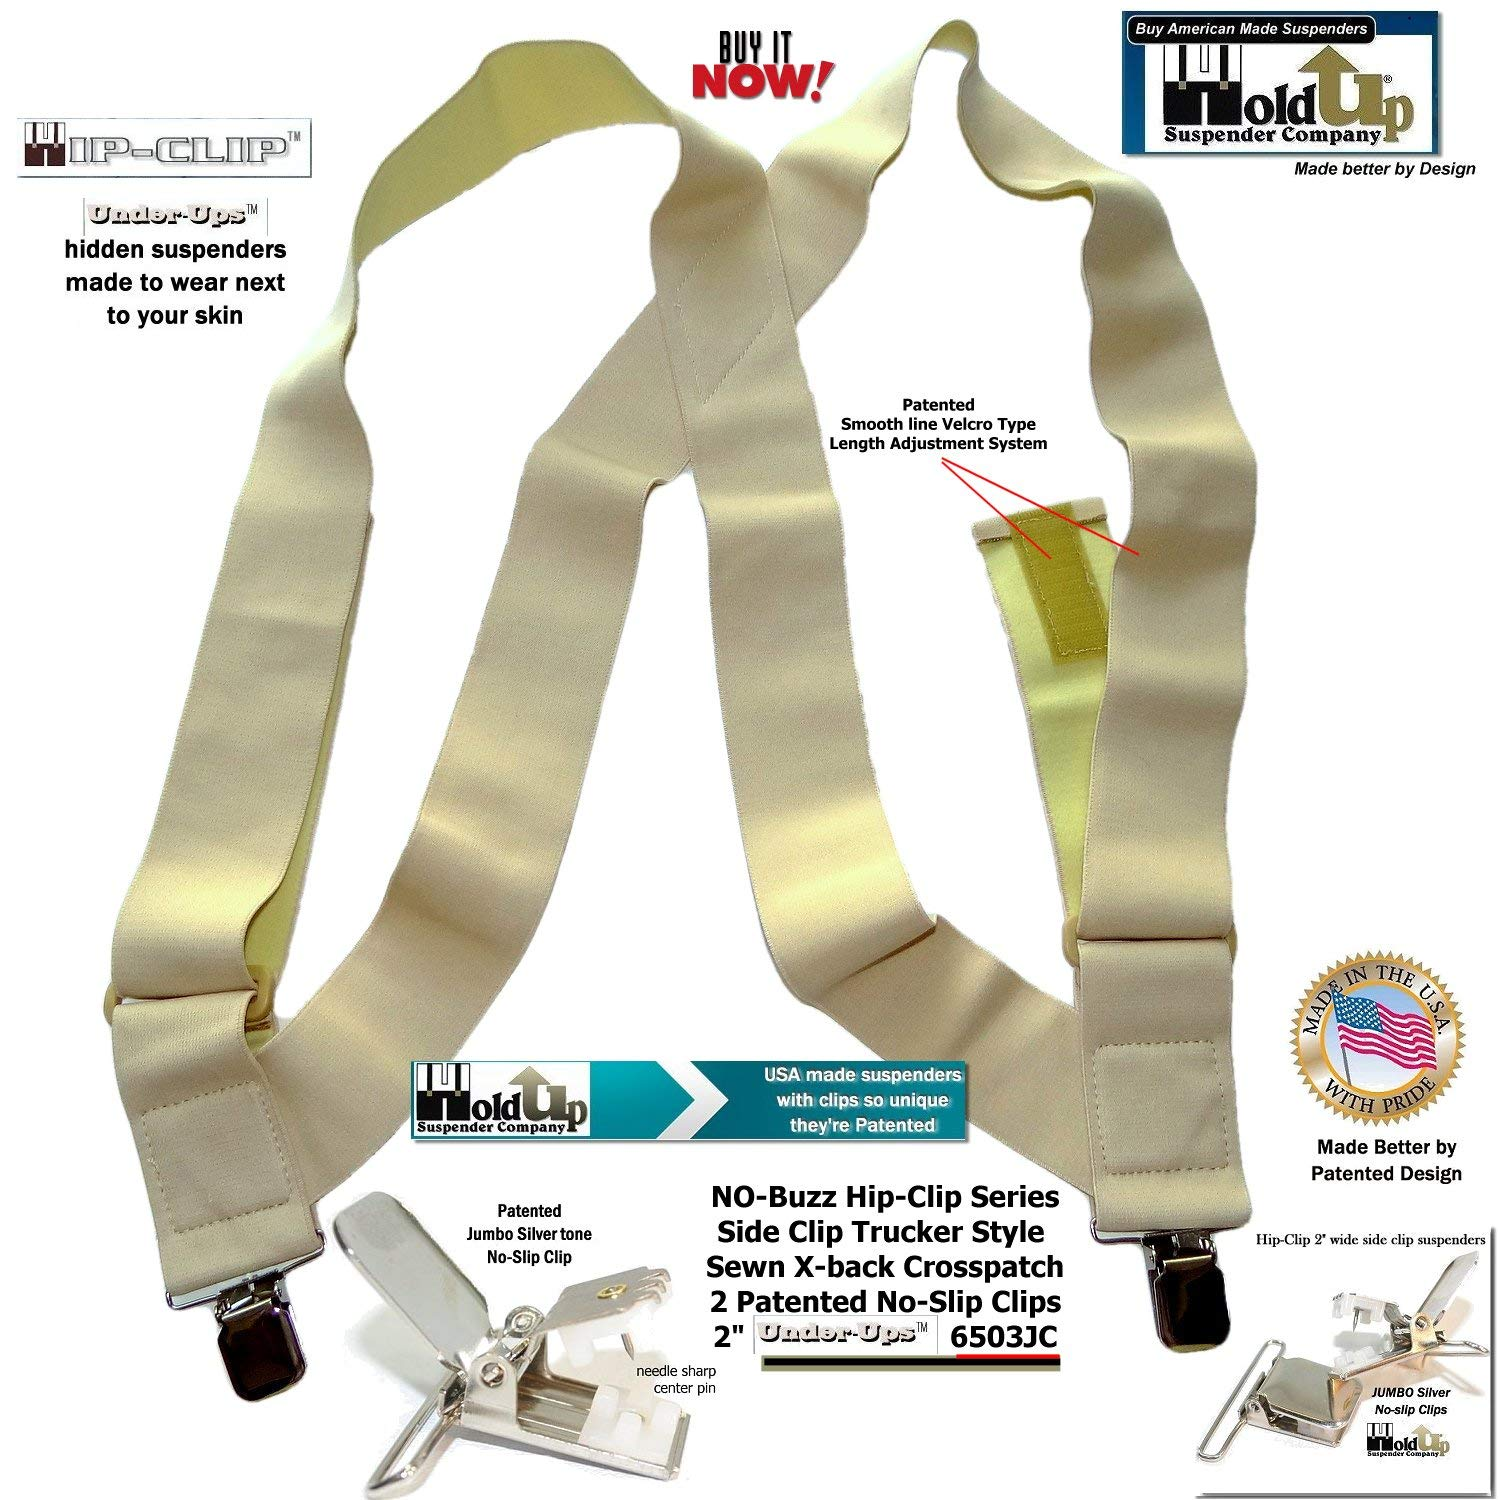 Under-Ups Hip-clip style Suspenders Holdup Undergarment 2 Wide with Metal No-slip Clips Holdup Suspender Company Inc 6503JC